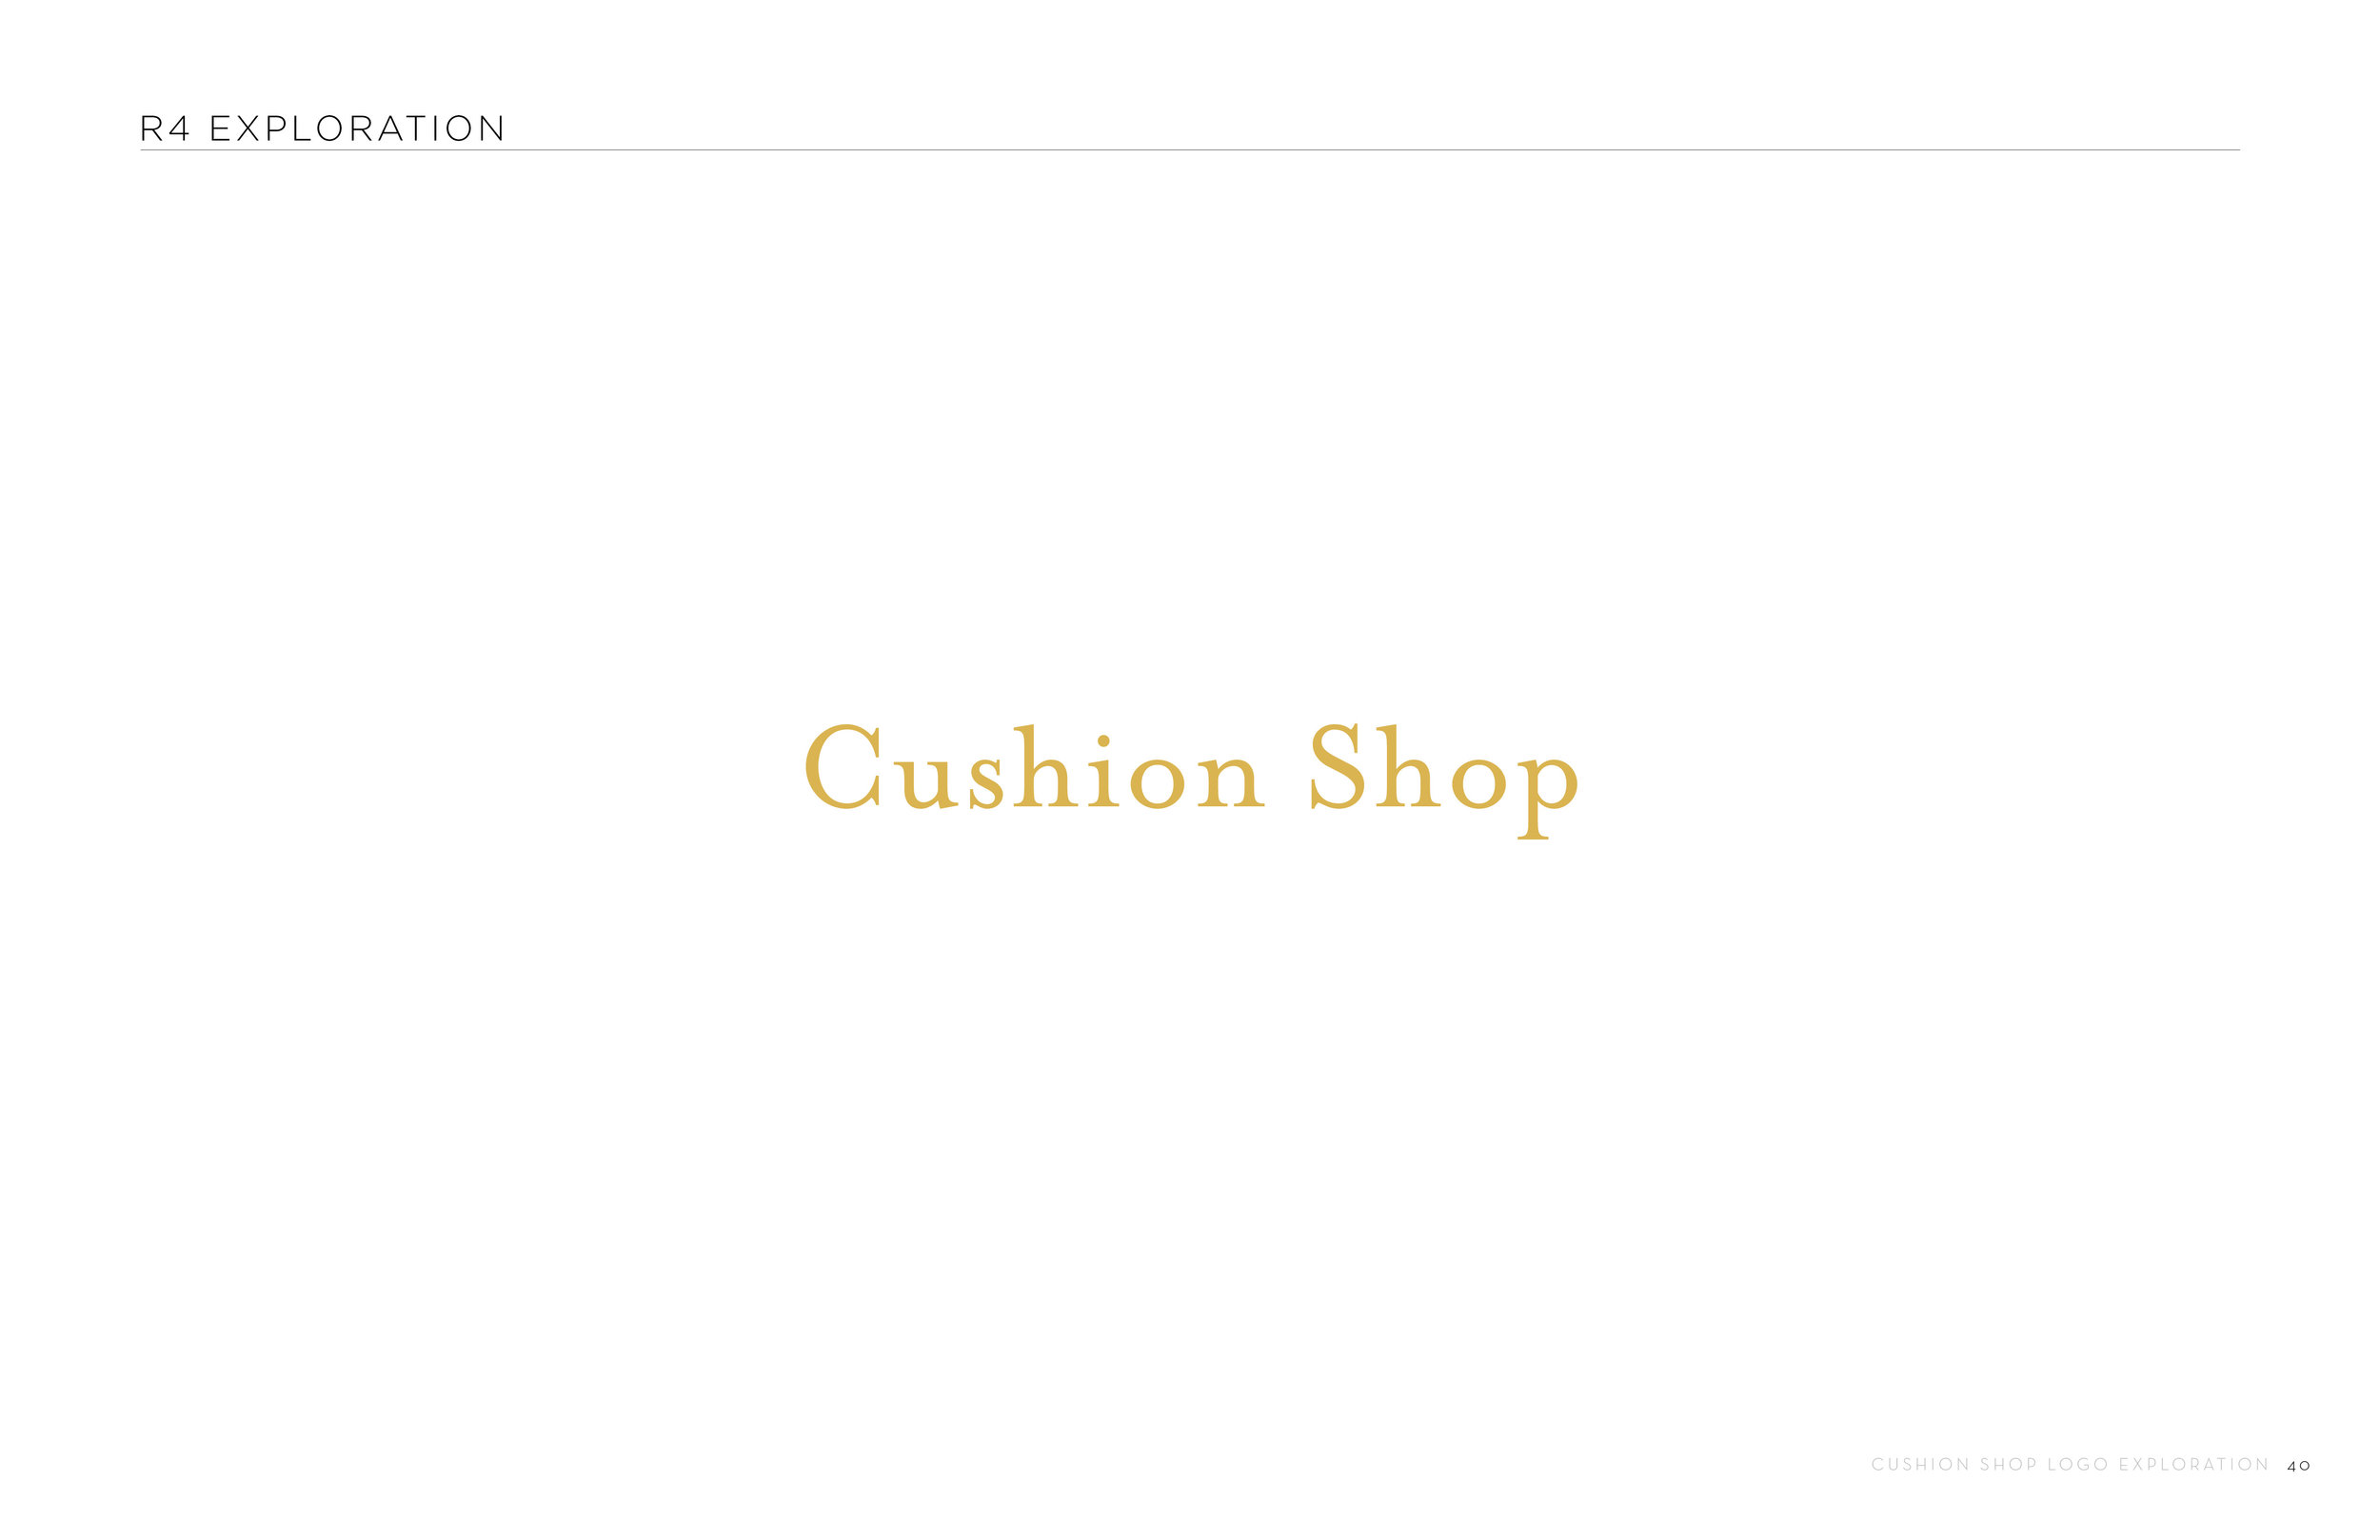 Cushion Shop_Logo Concepts_R10_40.jpg